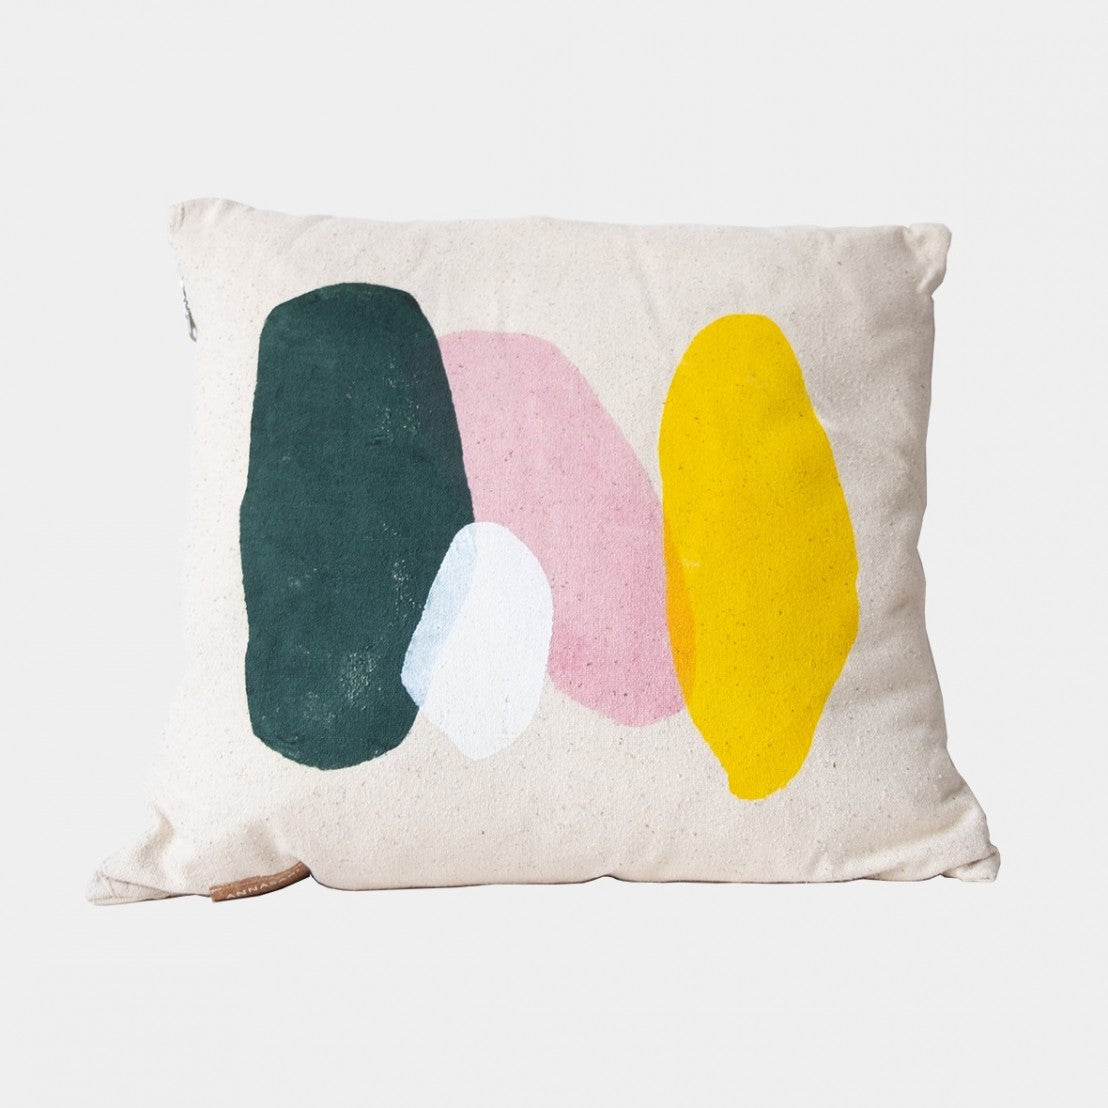 Handpainted colourful pillow case